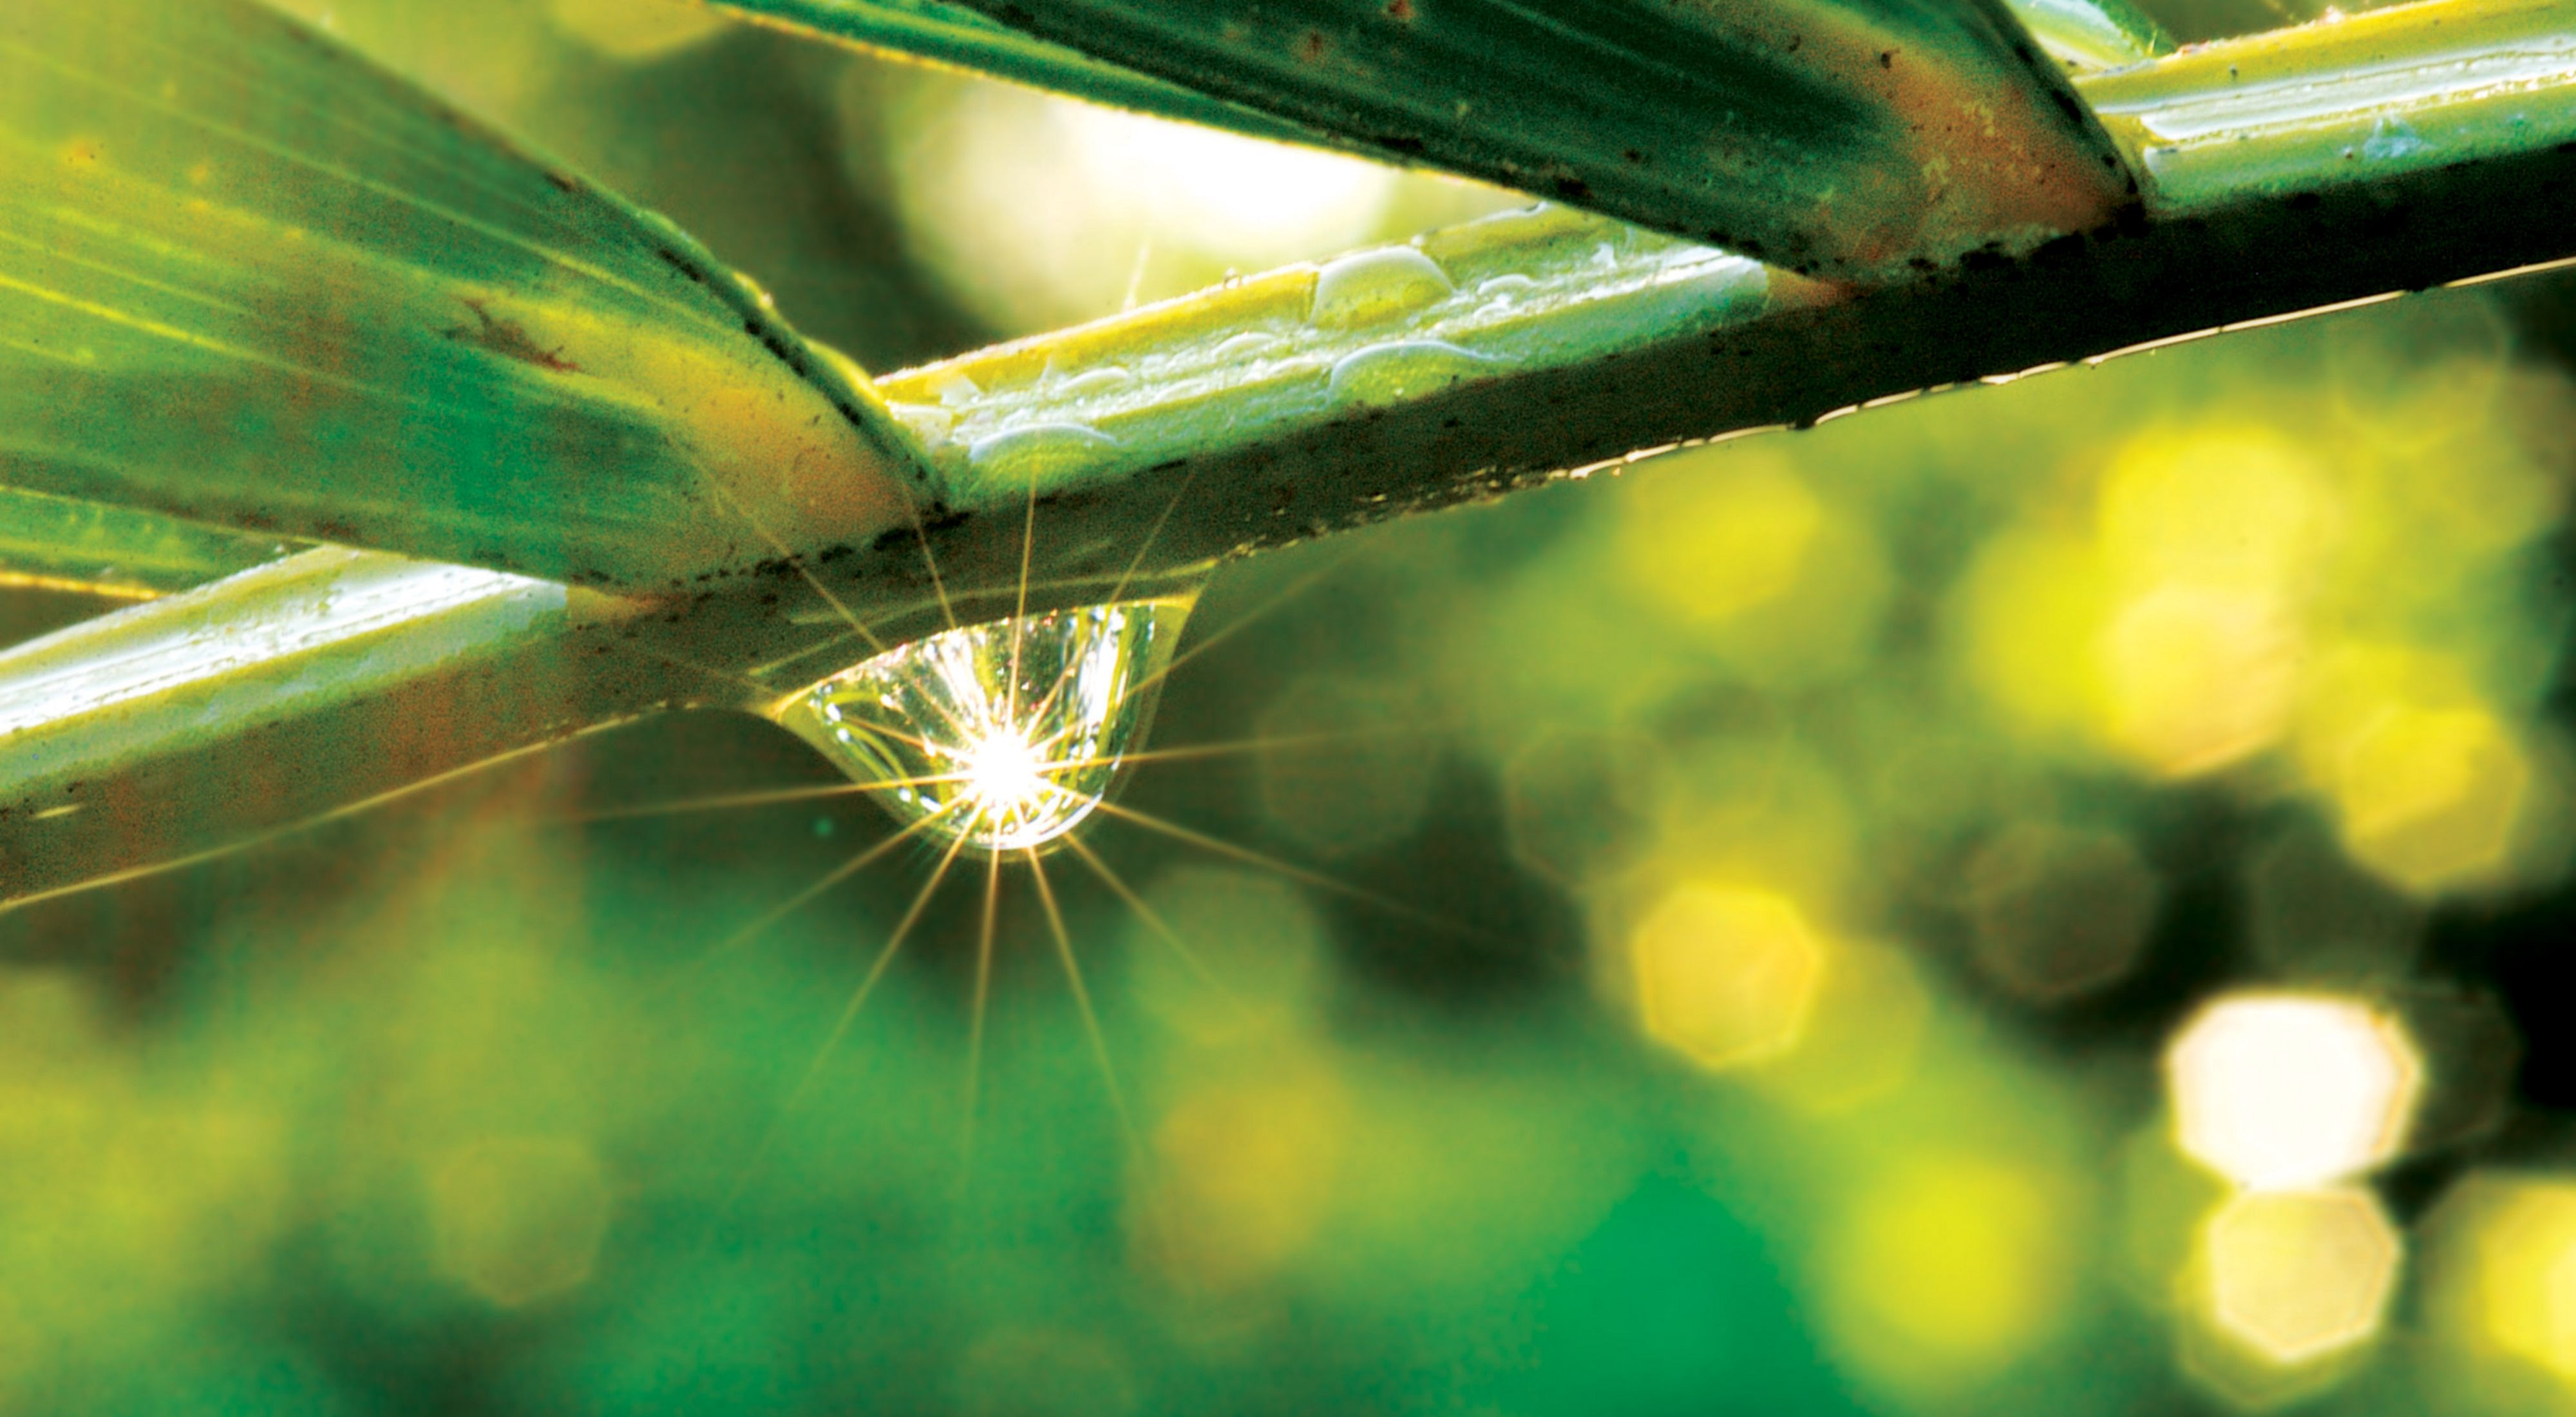 Sunlight reflected through water droplet on plant in the tropical rainforest of Costa Rica's Osa Peninsula.